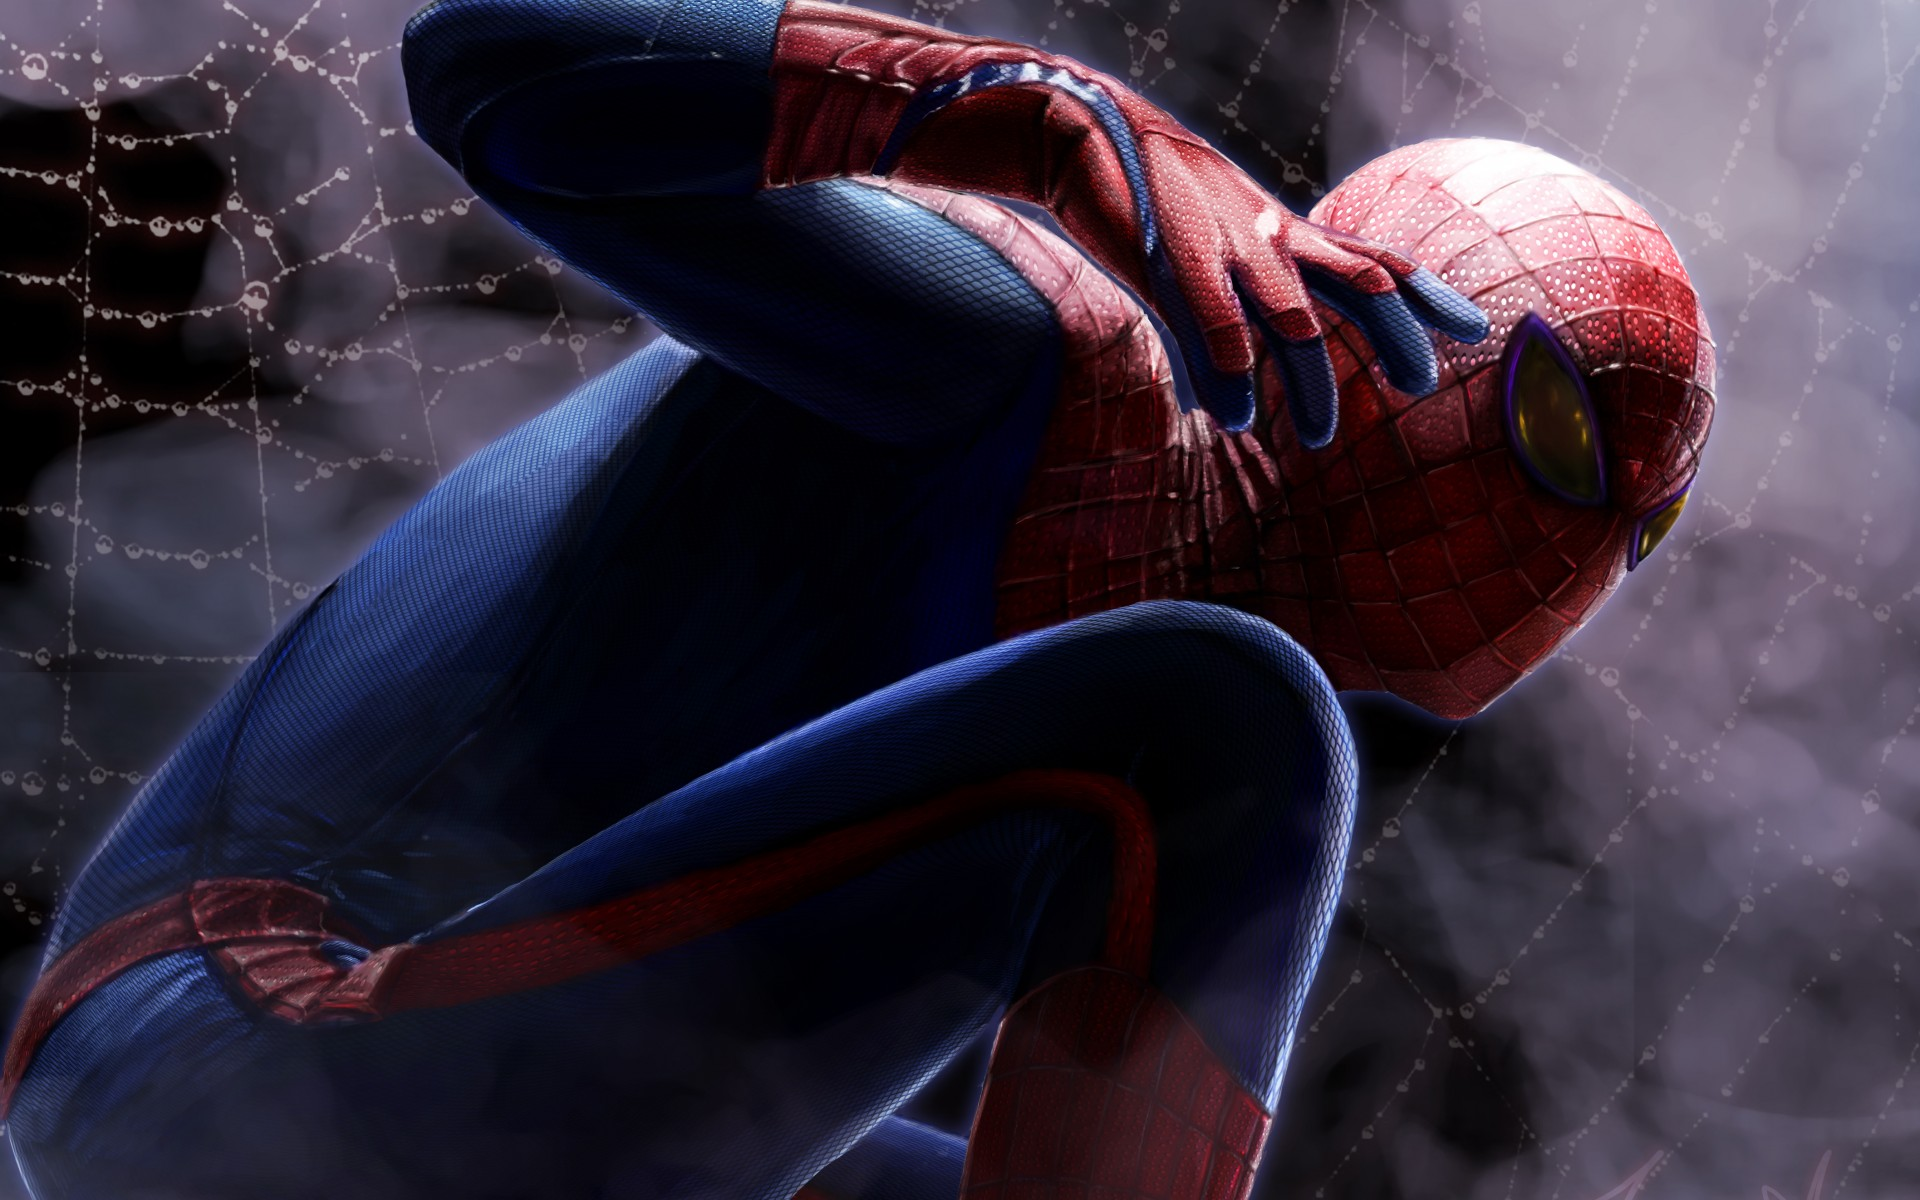 Spider Man Backgrounds   Wallpaper High Definition High Quality 1920x1200